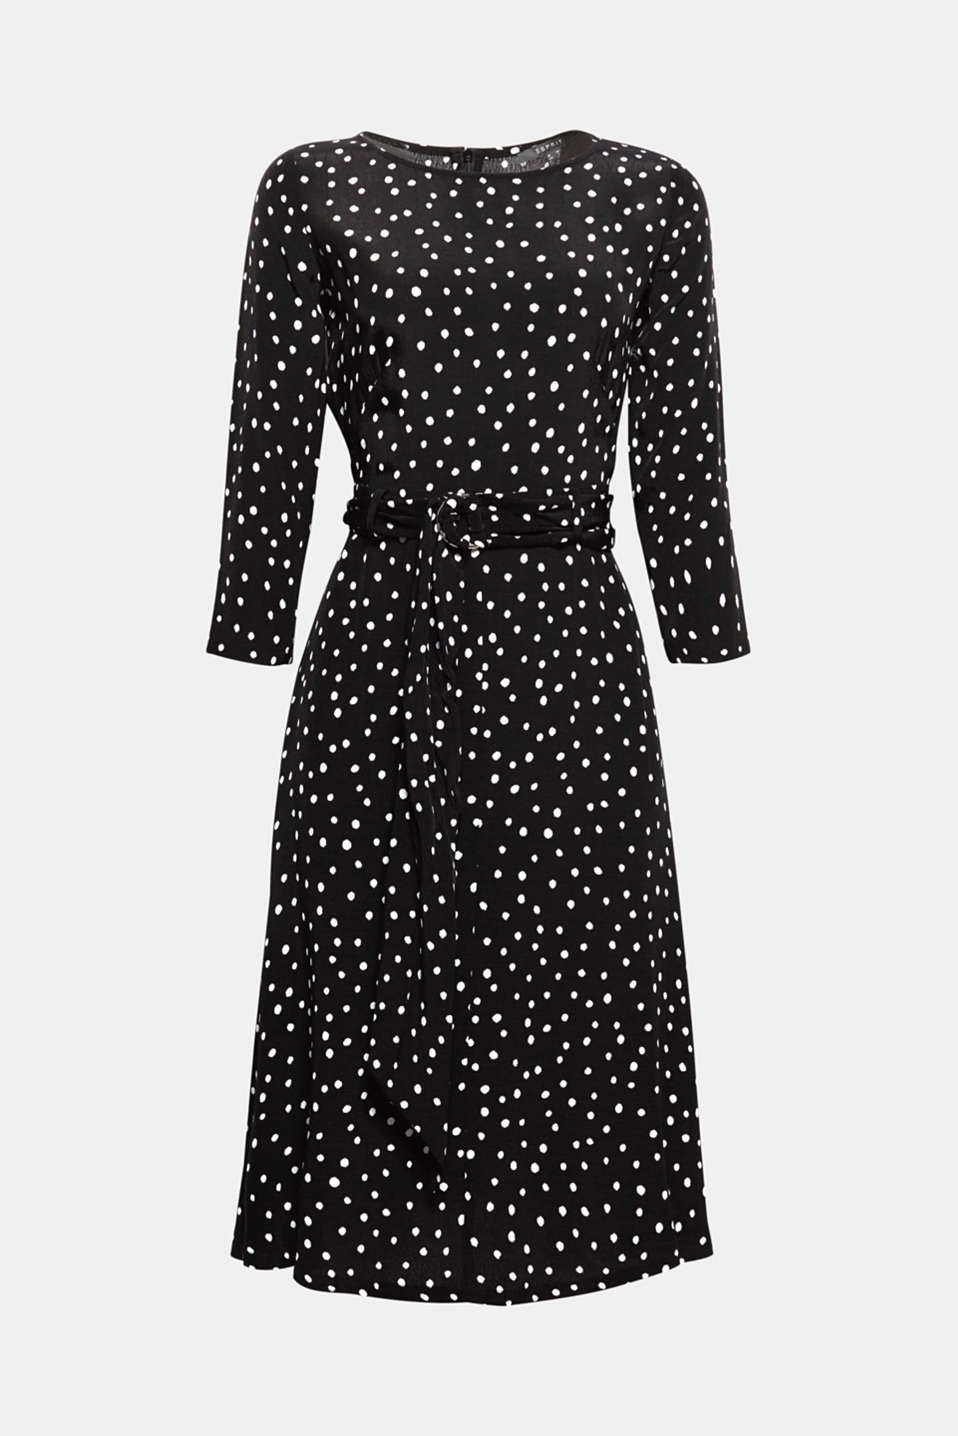 We love polka dots! With its polka dot pattern, belt and wide skirt, this dress exudes oodles of charm.